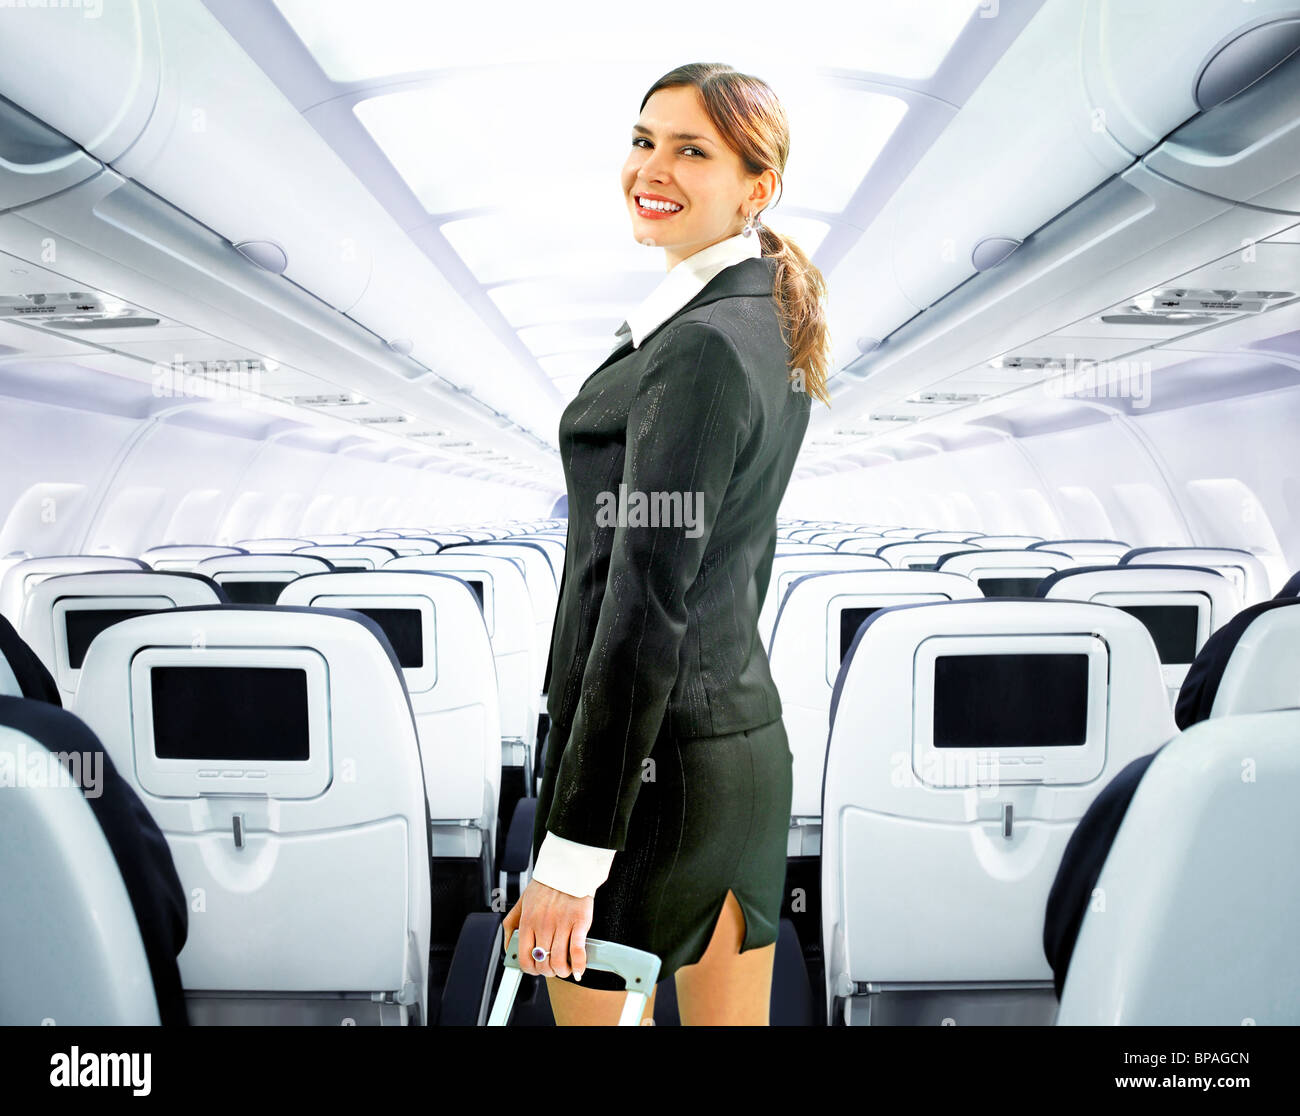 In Flight Catering Stock Photos & In Flight Catering Stock Images ...